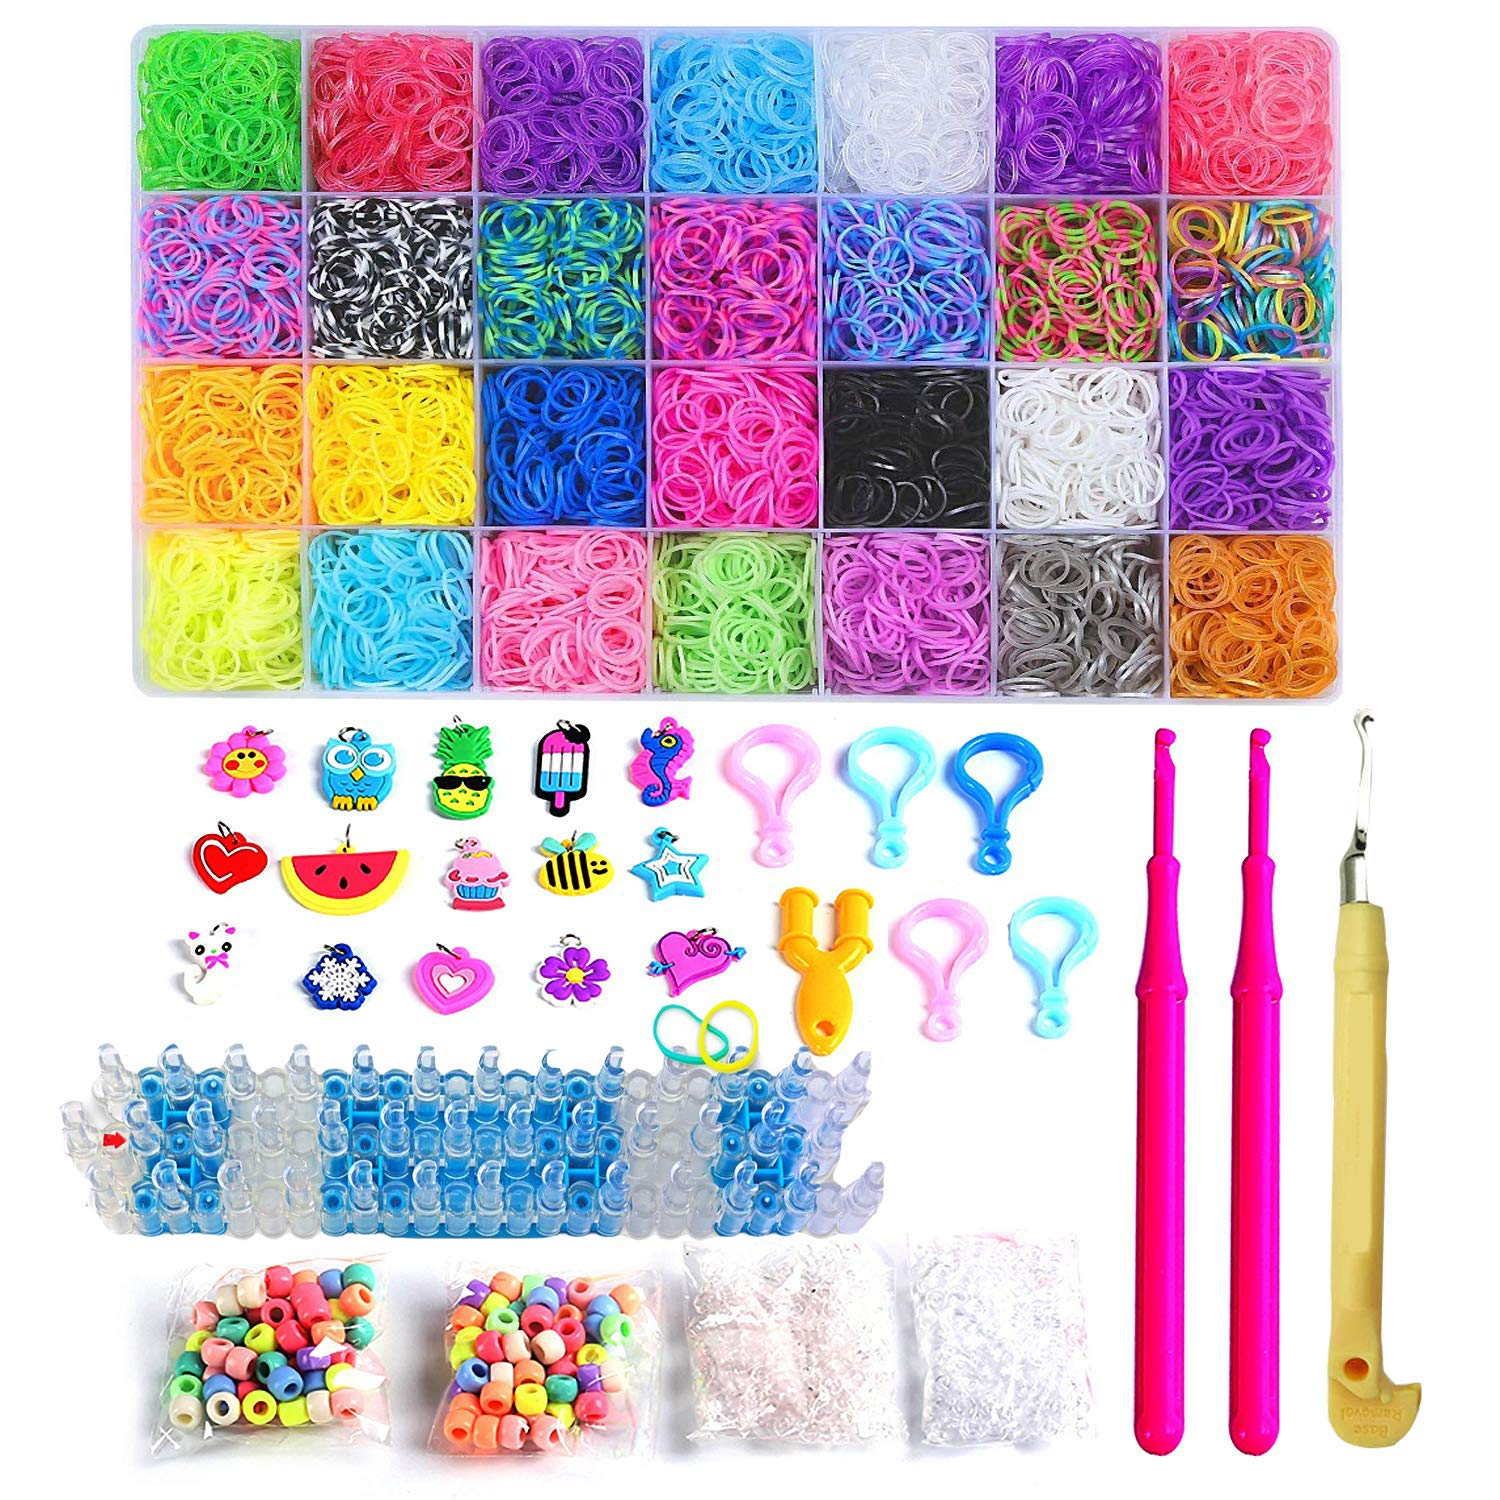 Rainbow Color Loom RubberBands Kit Colorful Bands Refill Bracelet Making Set Including6800 Pcs Rubber Loom Bands 200 Pcs Slips 100 Beads 15 Charms 8 Tools More for DIYWeaving Crafting by Bomach (Image #1)